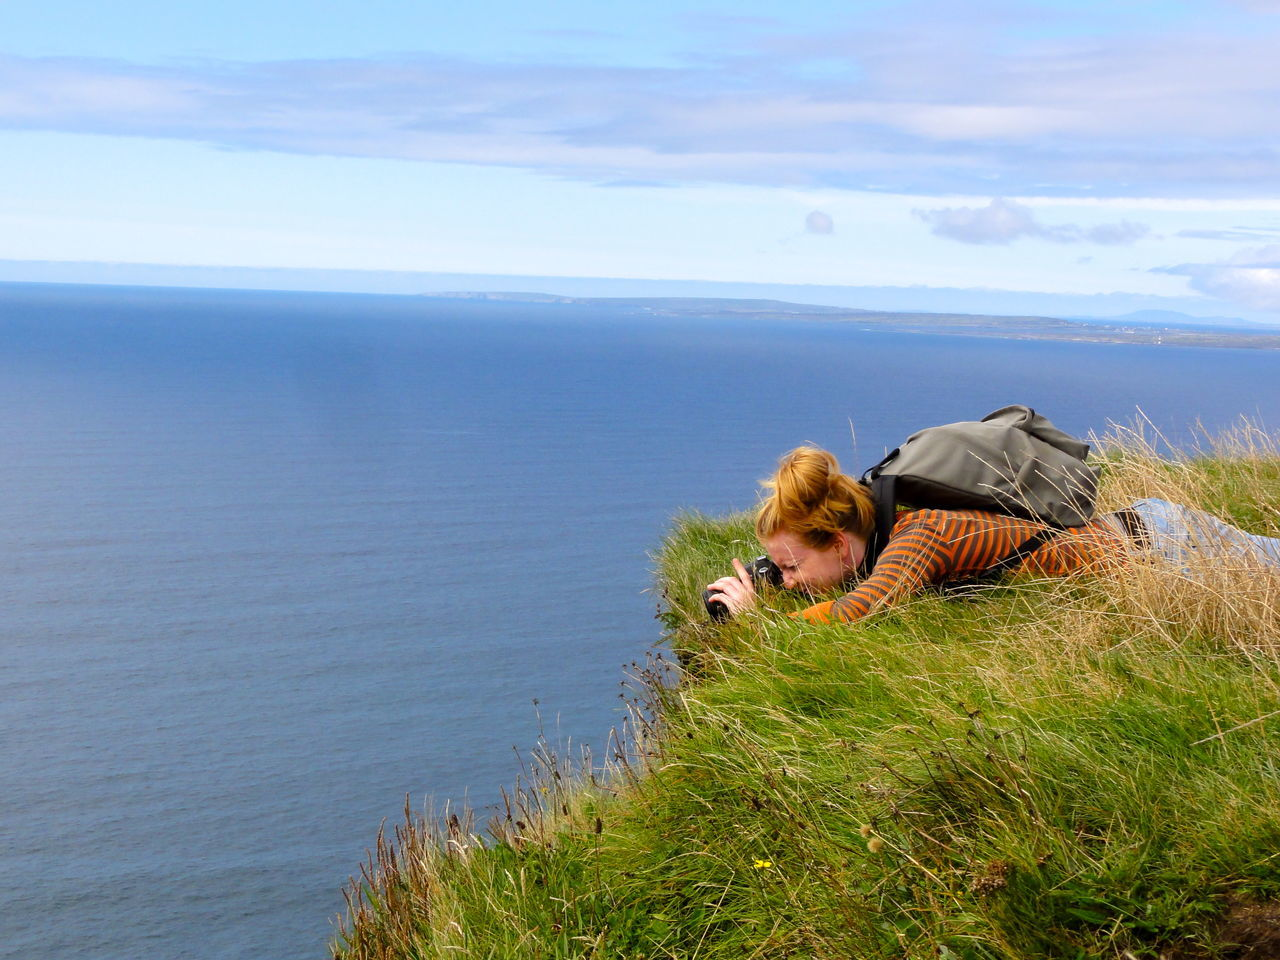 Beautiful stock photos of irland, 25-29 Years, Backpack, Beauty In Nature, Camera - Photographic Equipment